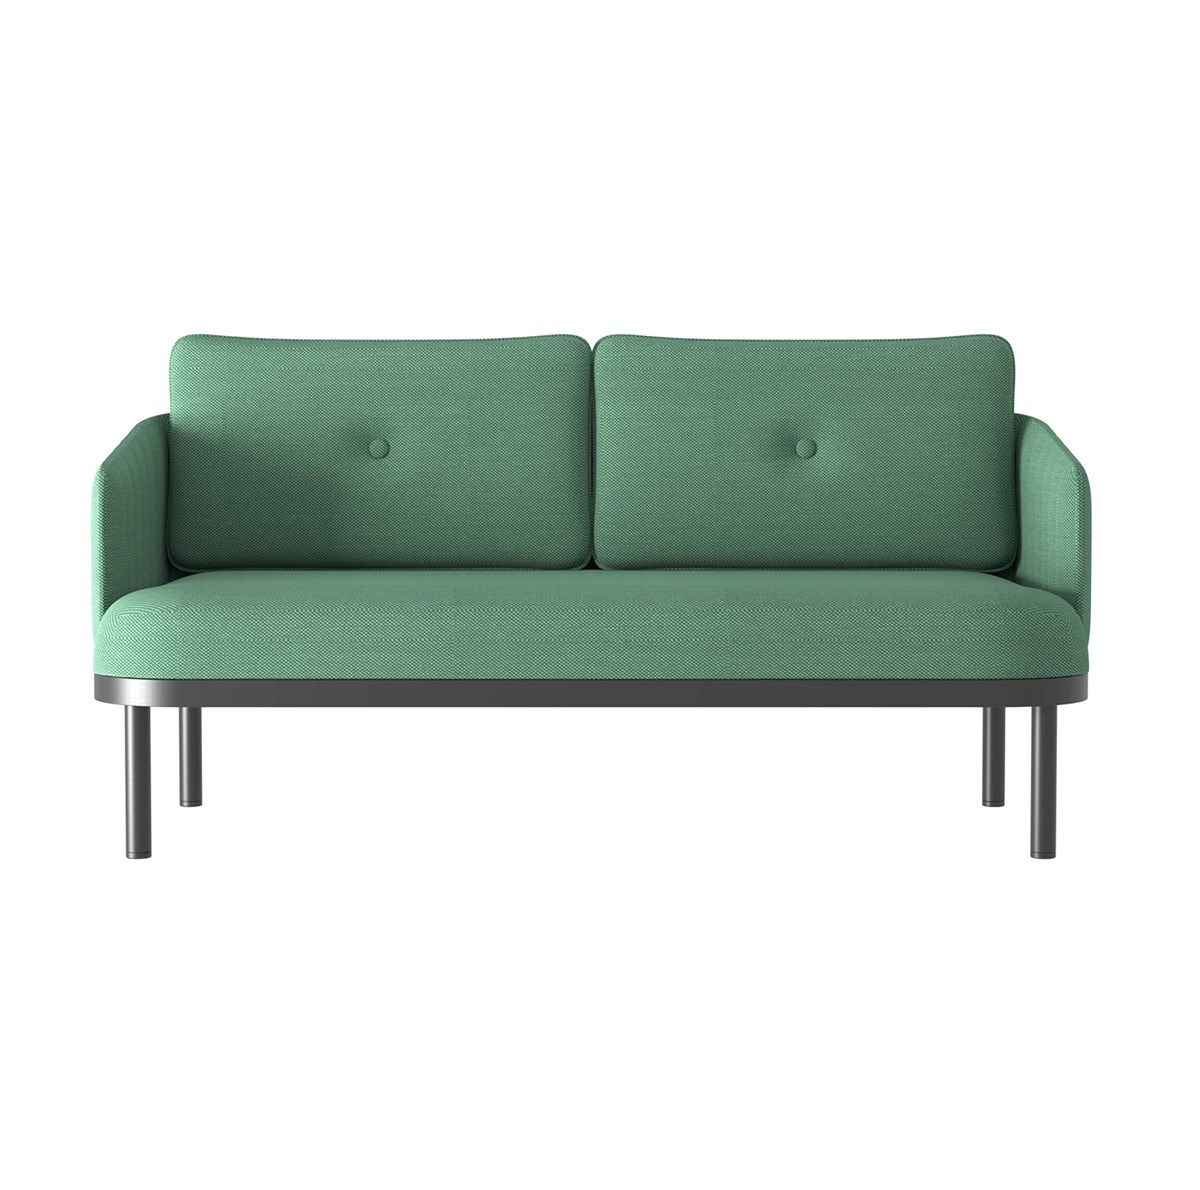 Neospace-Dwell-Sofa-Short-Back-Contract-Matisse-2